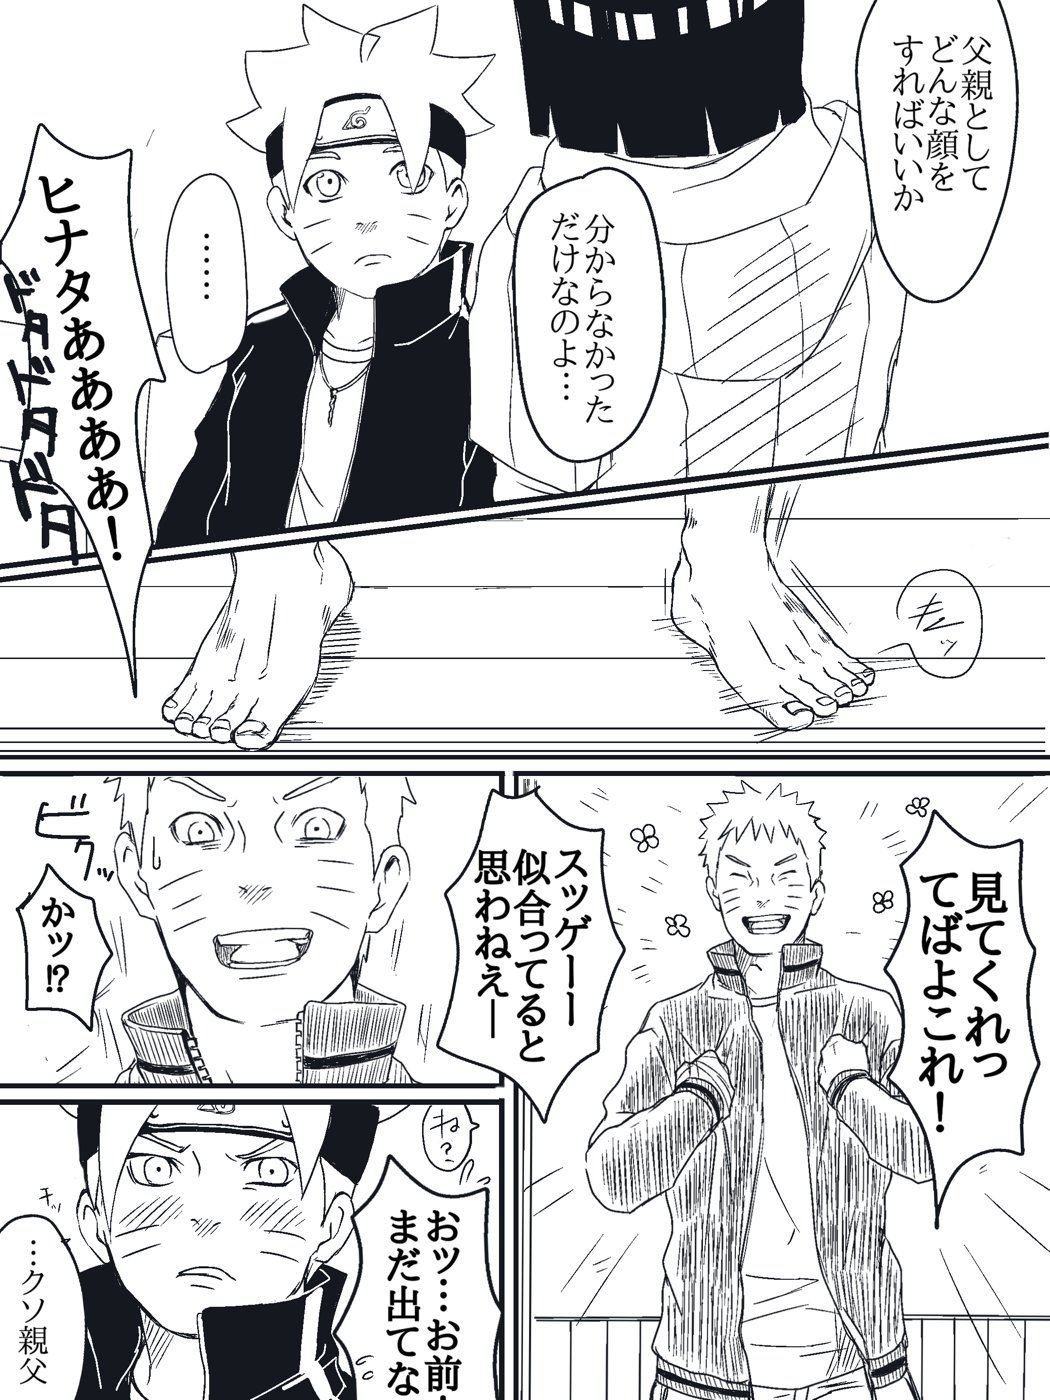 !? 1girl 2boys ^_^ barefoot blush boruto:_naruto_next_generations closed_eyes comic father_and_son feet happy headband highres hyuuga_hinata jacket monochrome mother_and_son multiple_boys naruto parent_and_child smile speech_bubble spiky_hair sweatdrop text translation_request uzumaki_boruto uzumaki_naruto whisker_markings